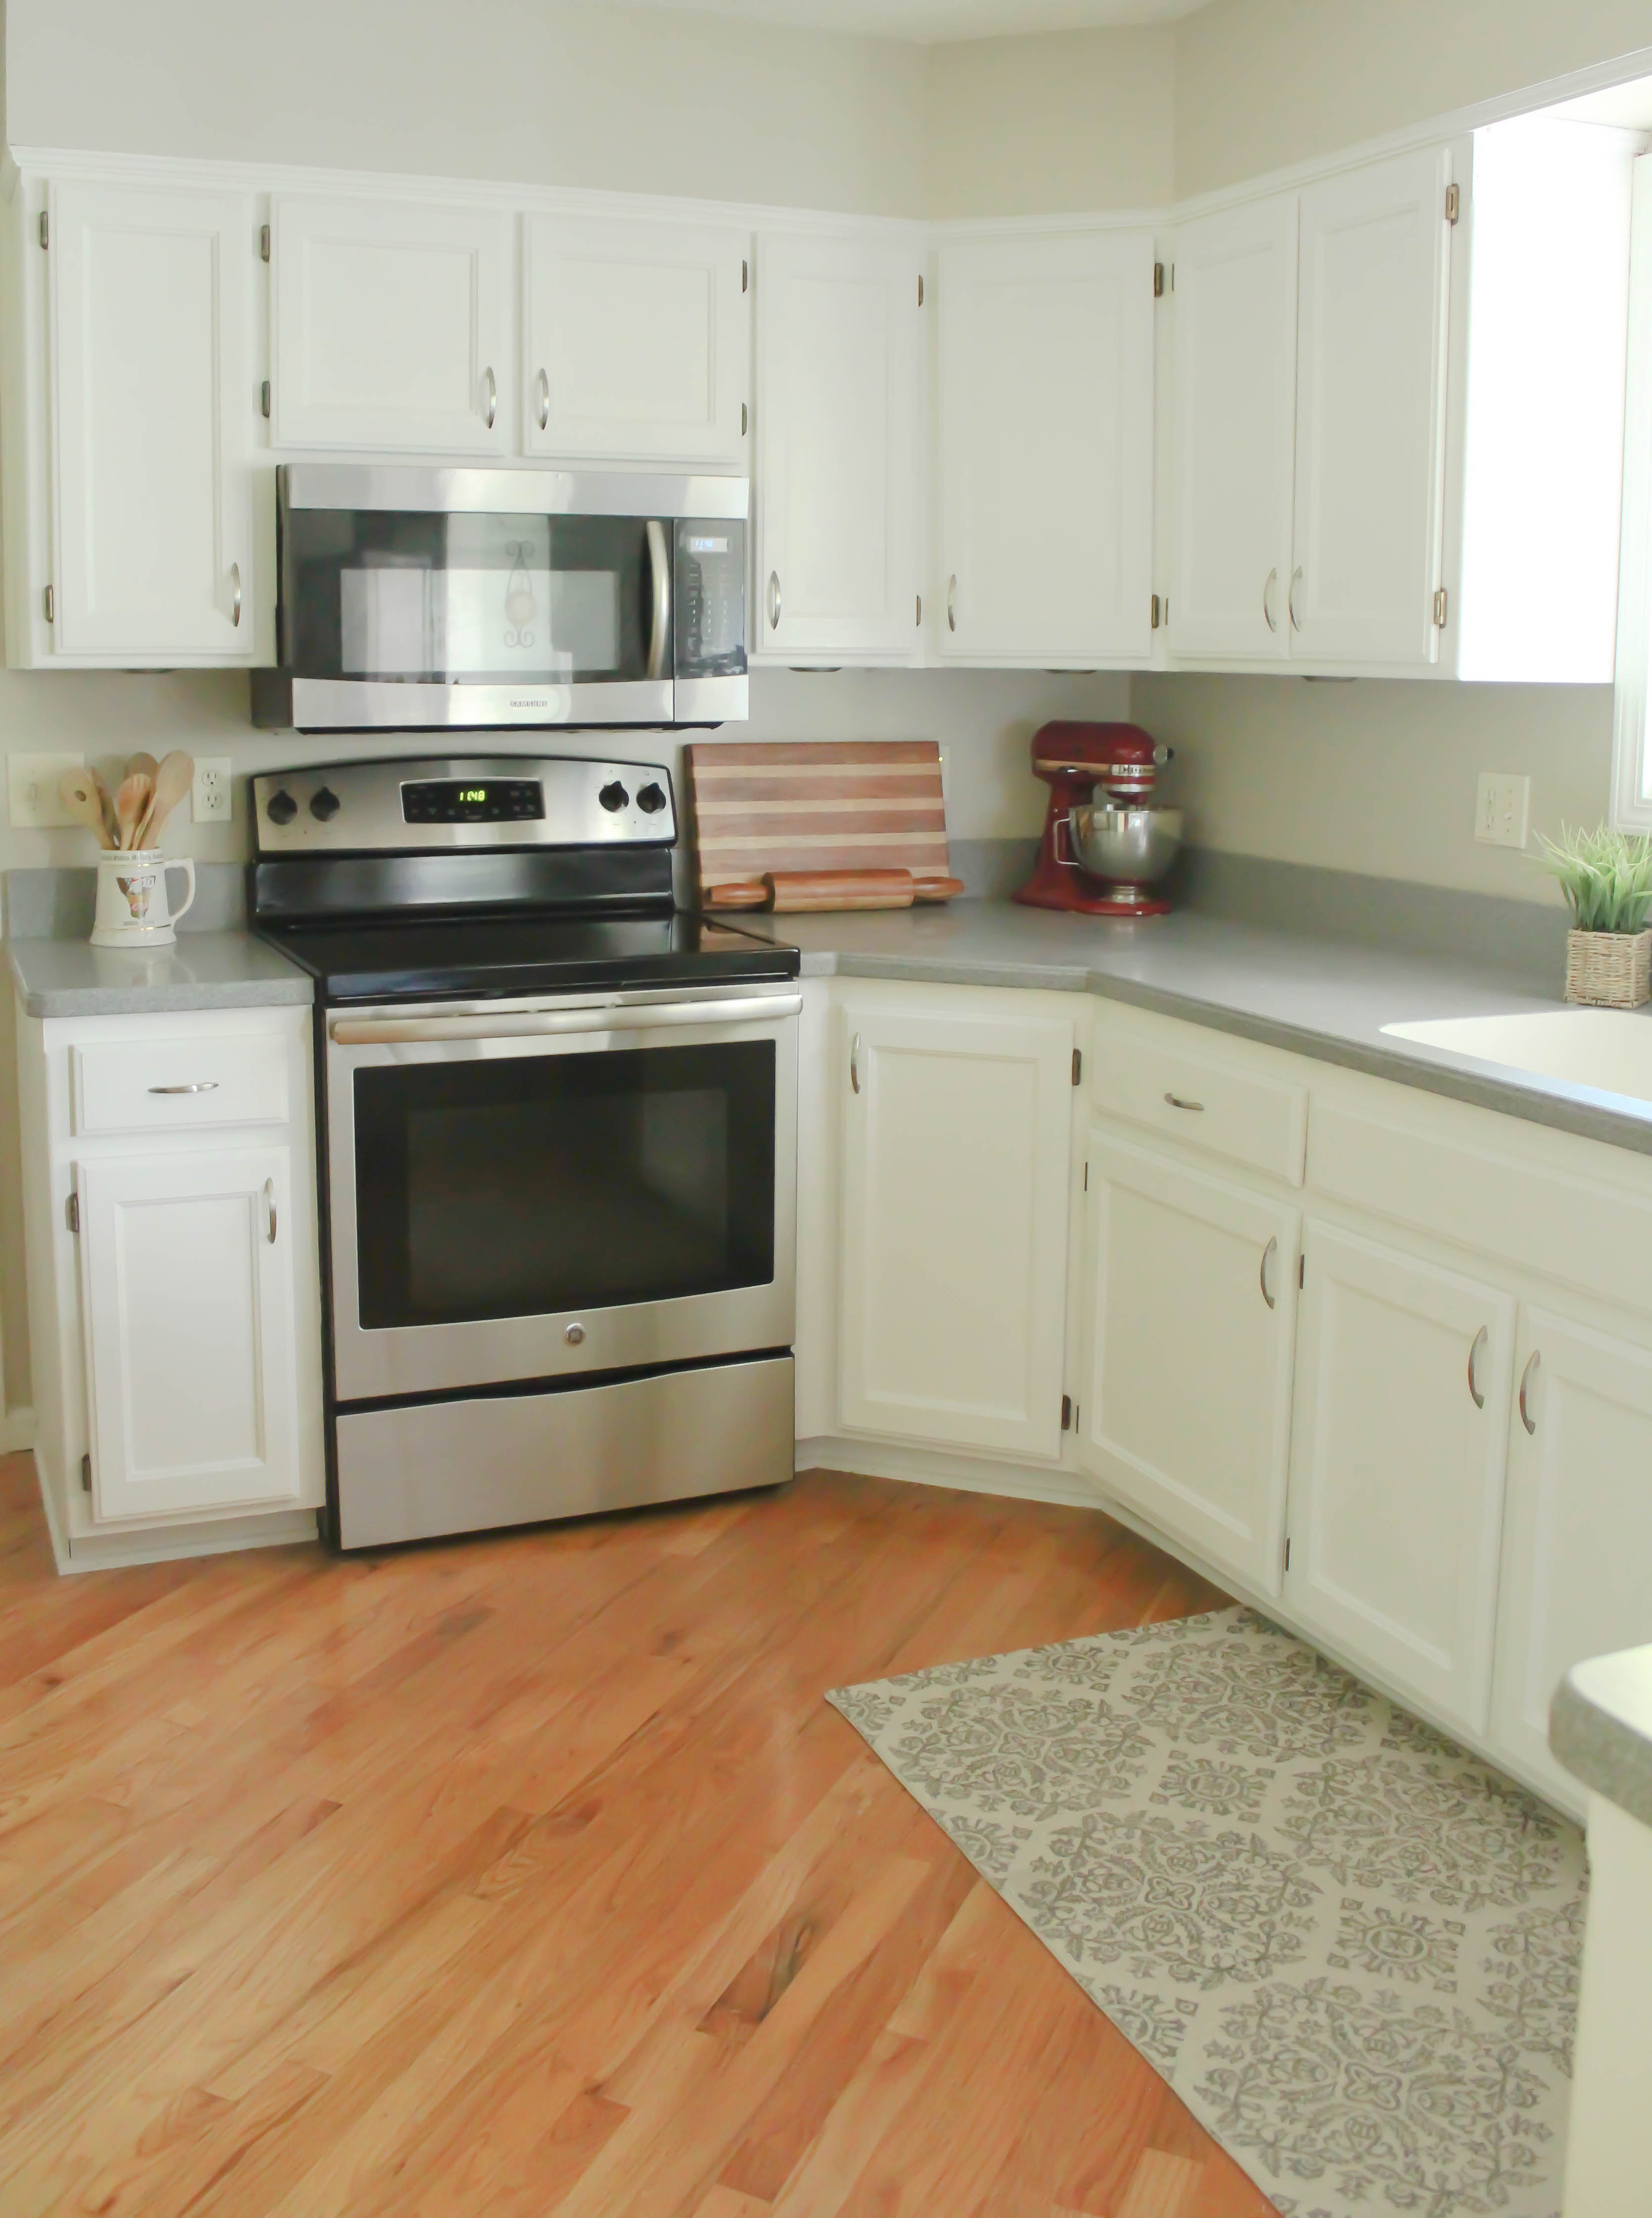 ChalkPainted Kitchen Cabinets Transformation From Honey Oak To Bright White